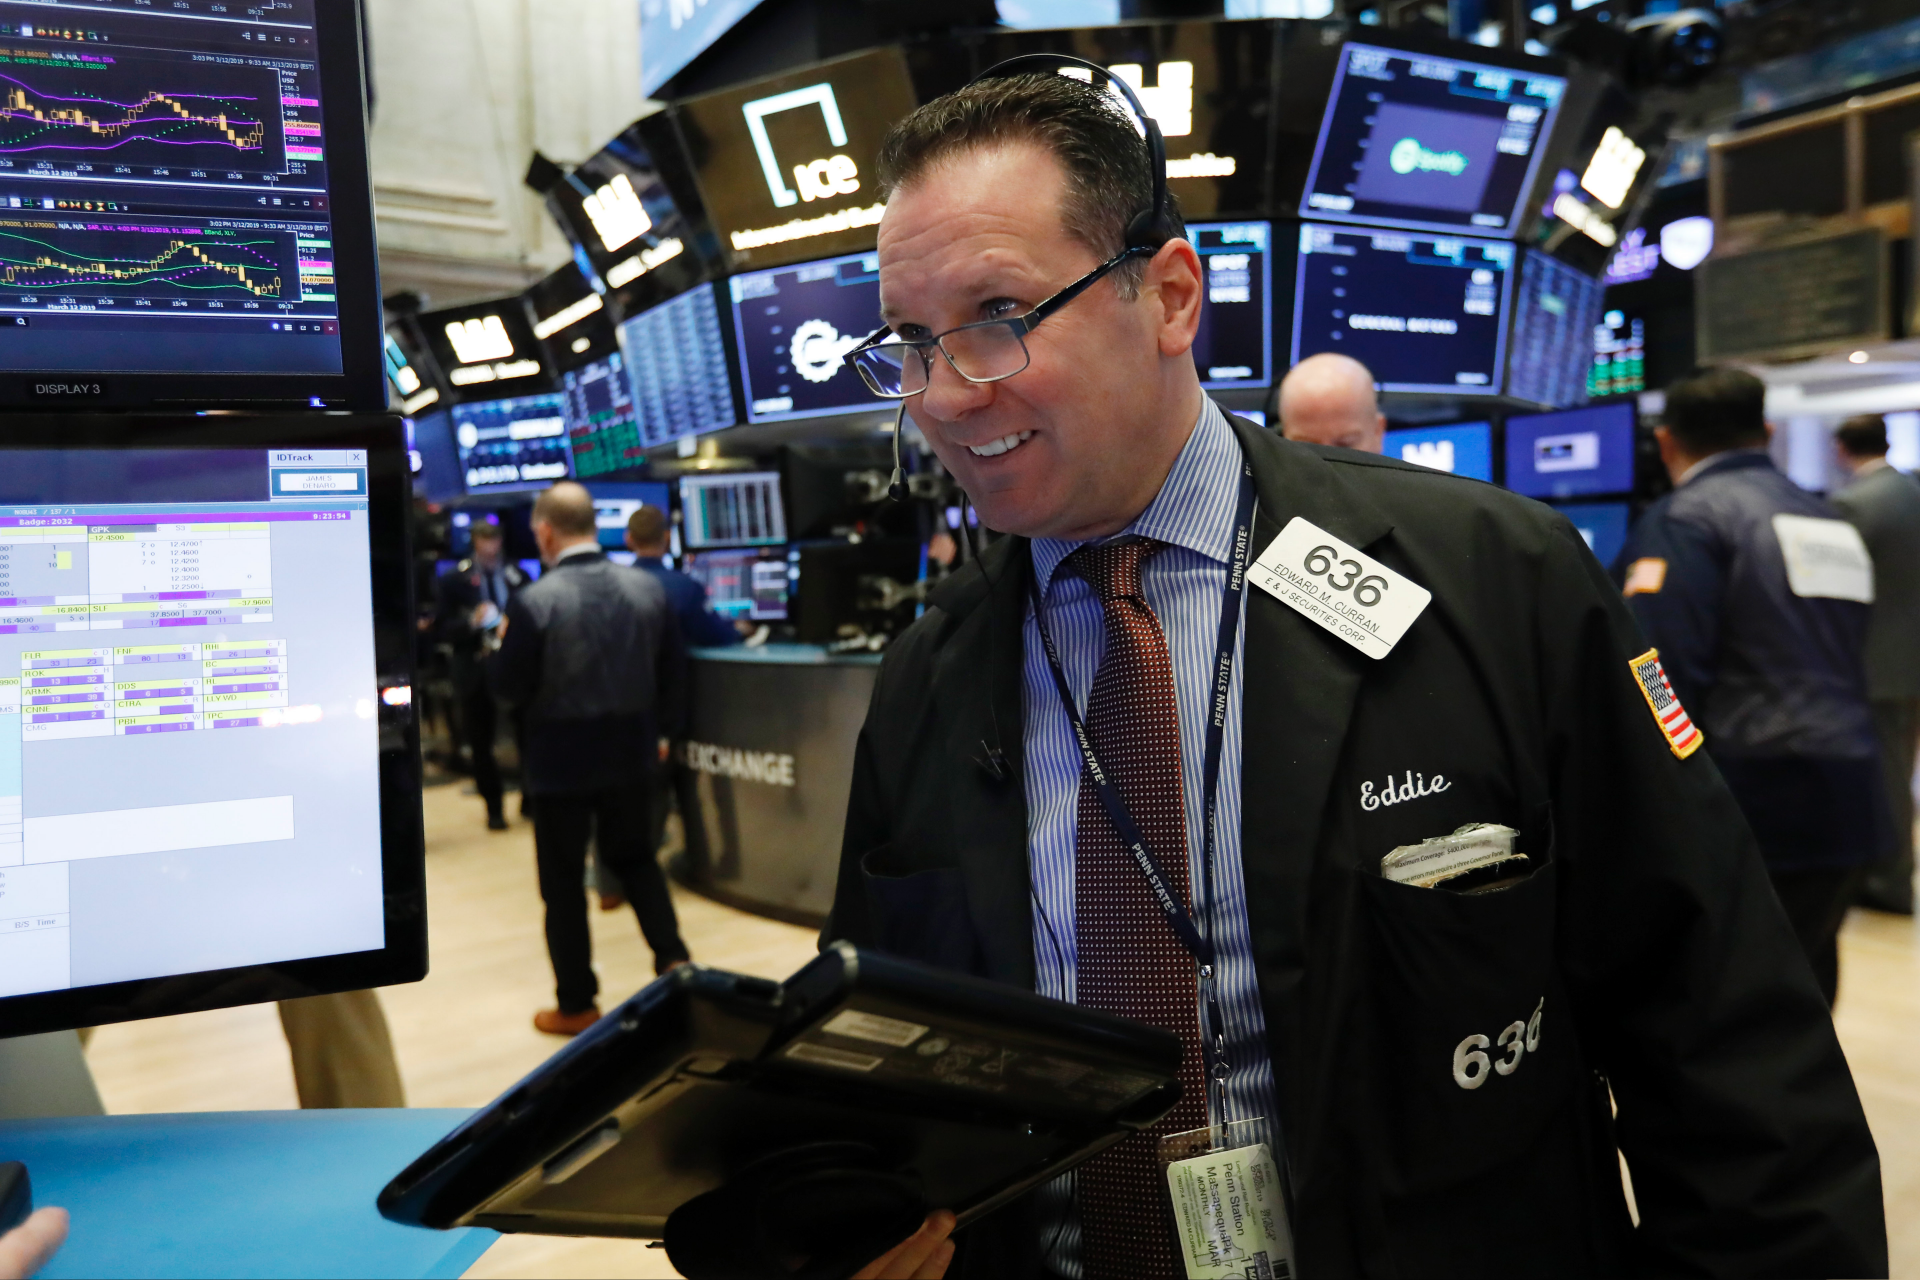 US stocks rise, led by technology and health care